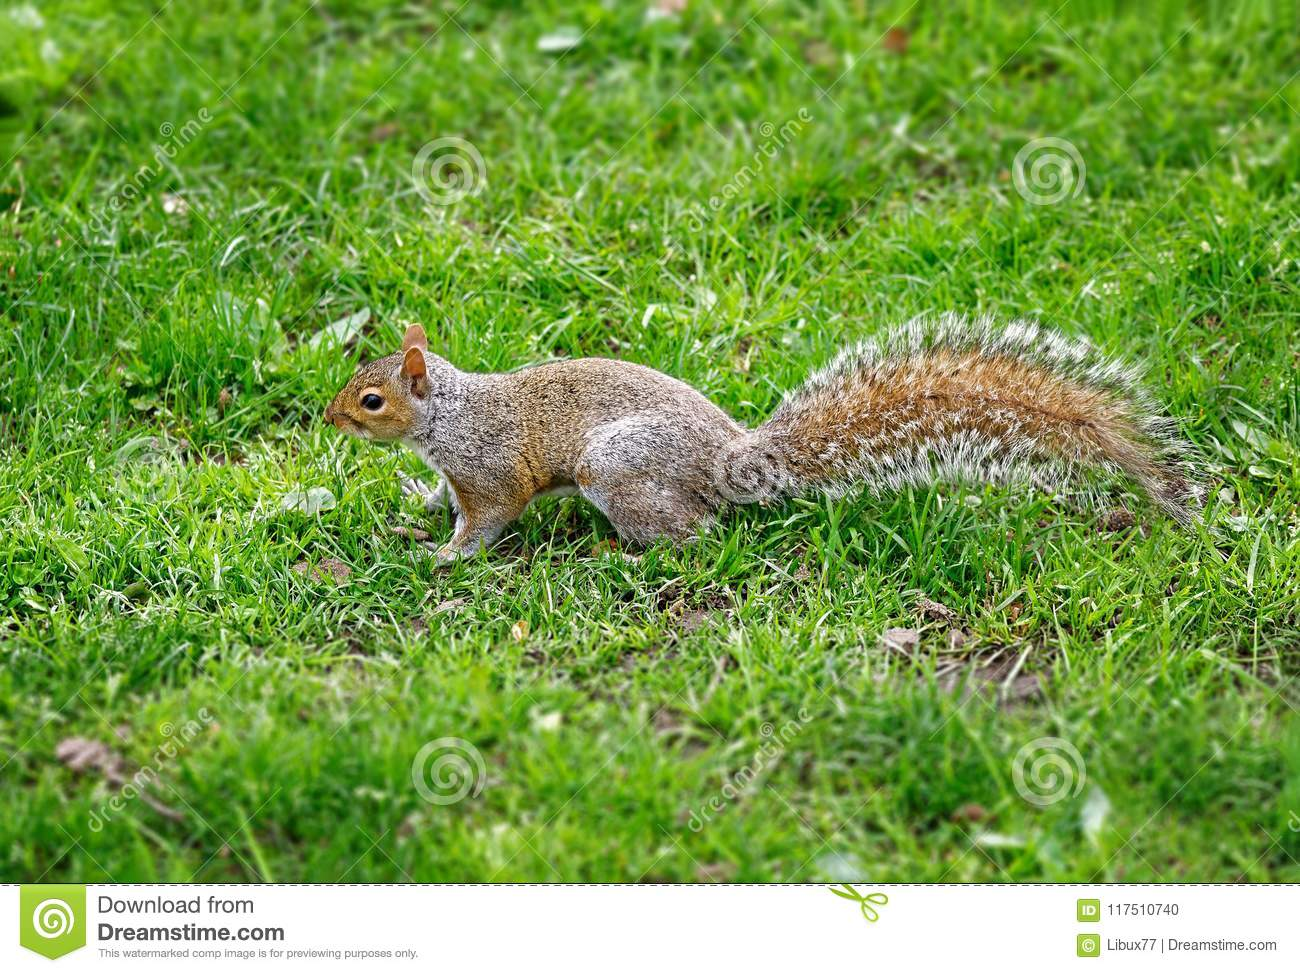 Squirrel side view on the grass central park New York City Usa